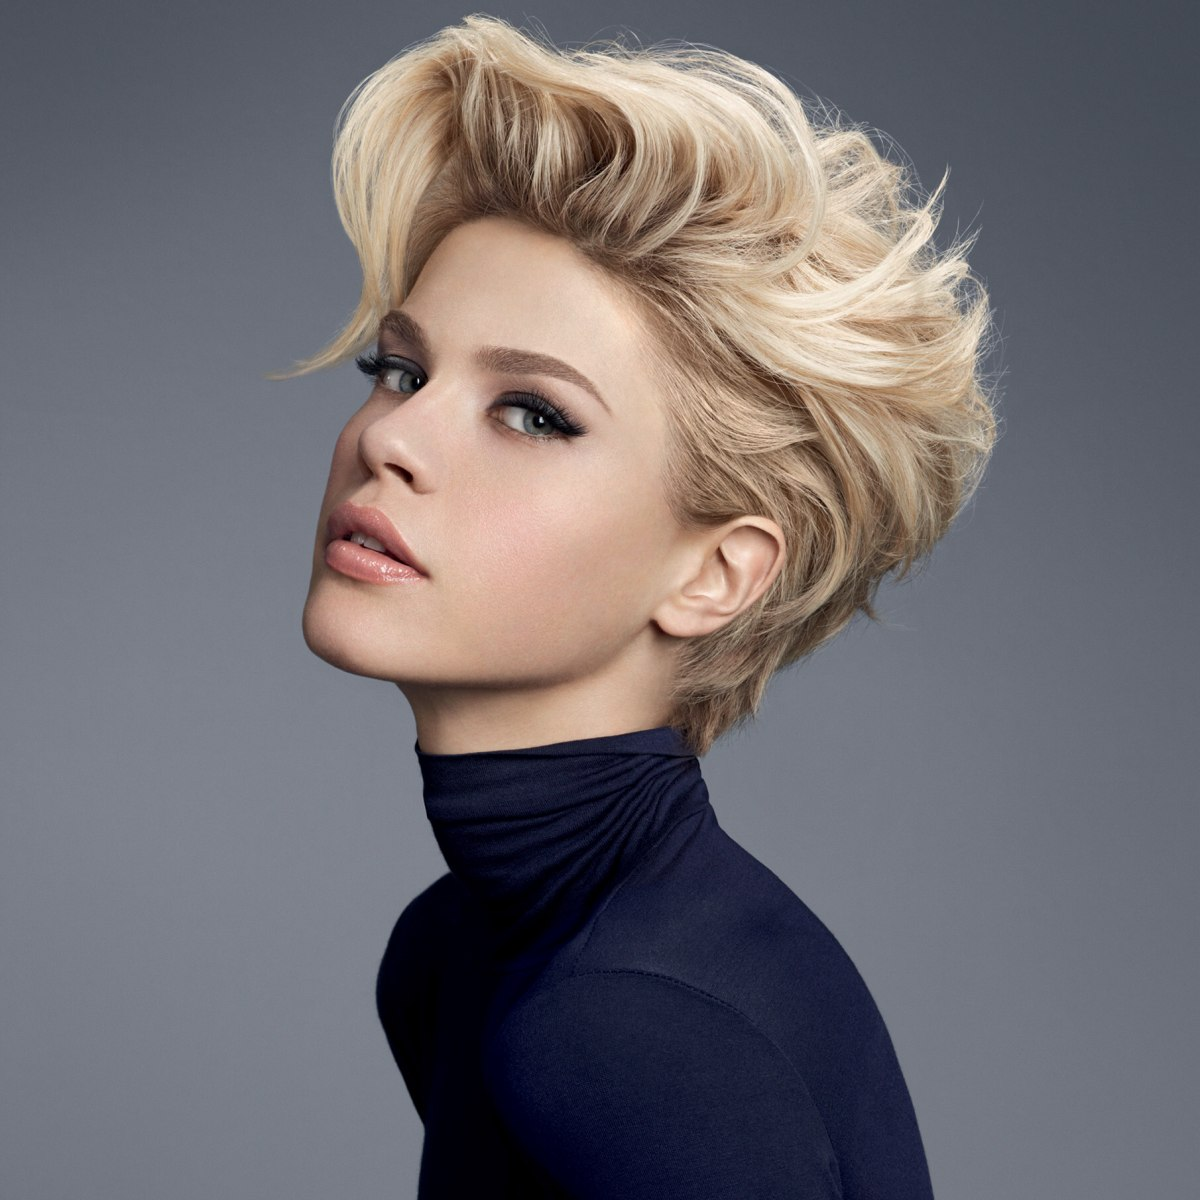 Short haircut with high volume and messy styling  Turtleneck